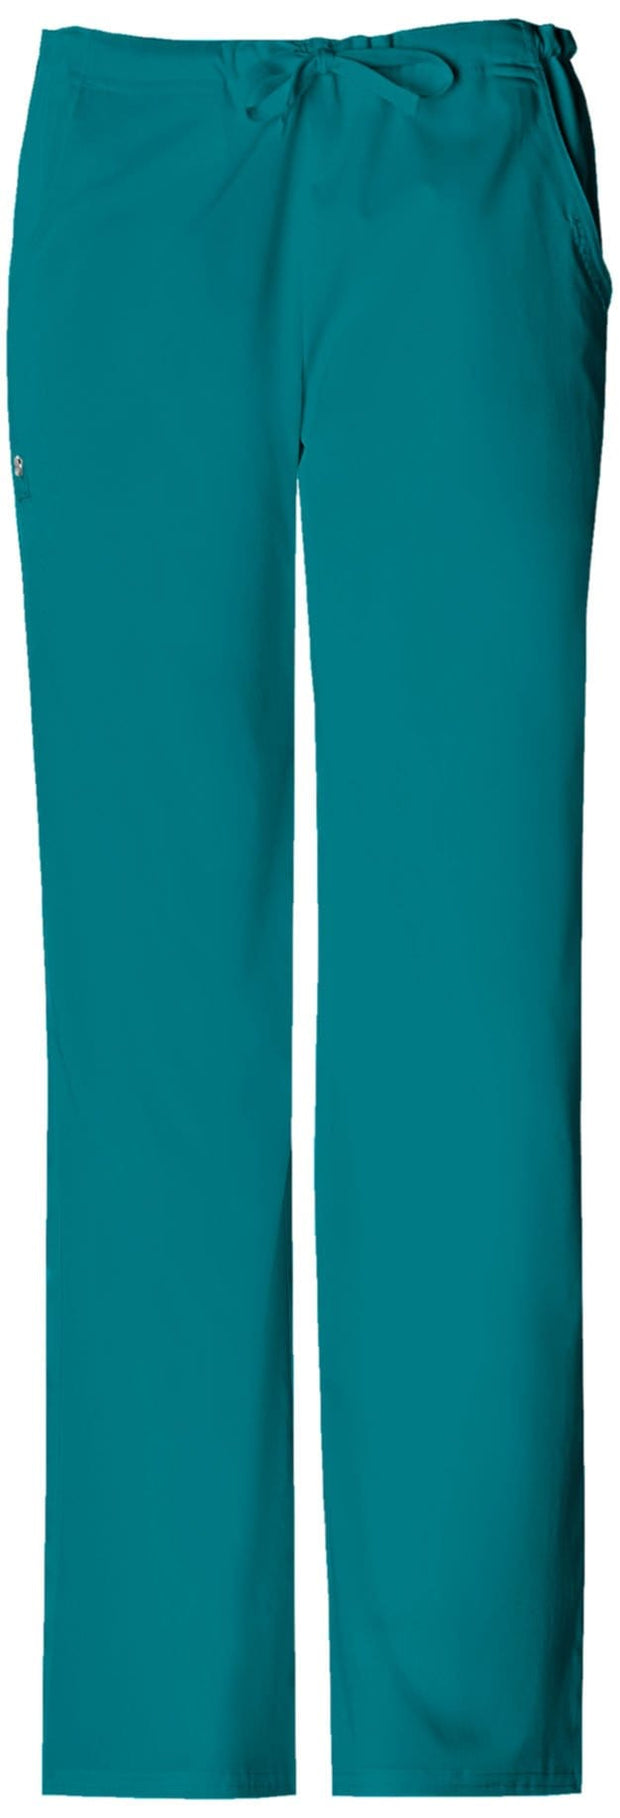 Cherokee Luxe Women's Low Rise Straight Leg Drawstring Pant (Petite) #1066P